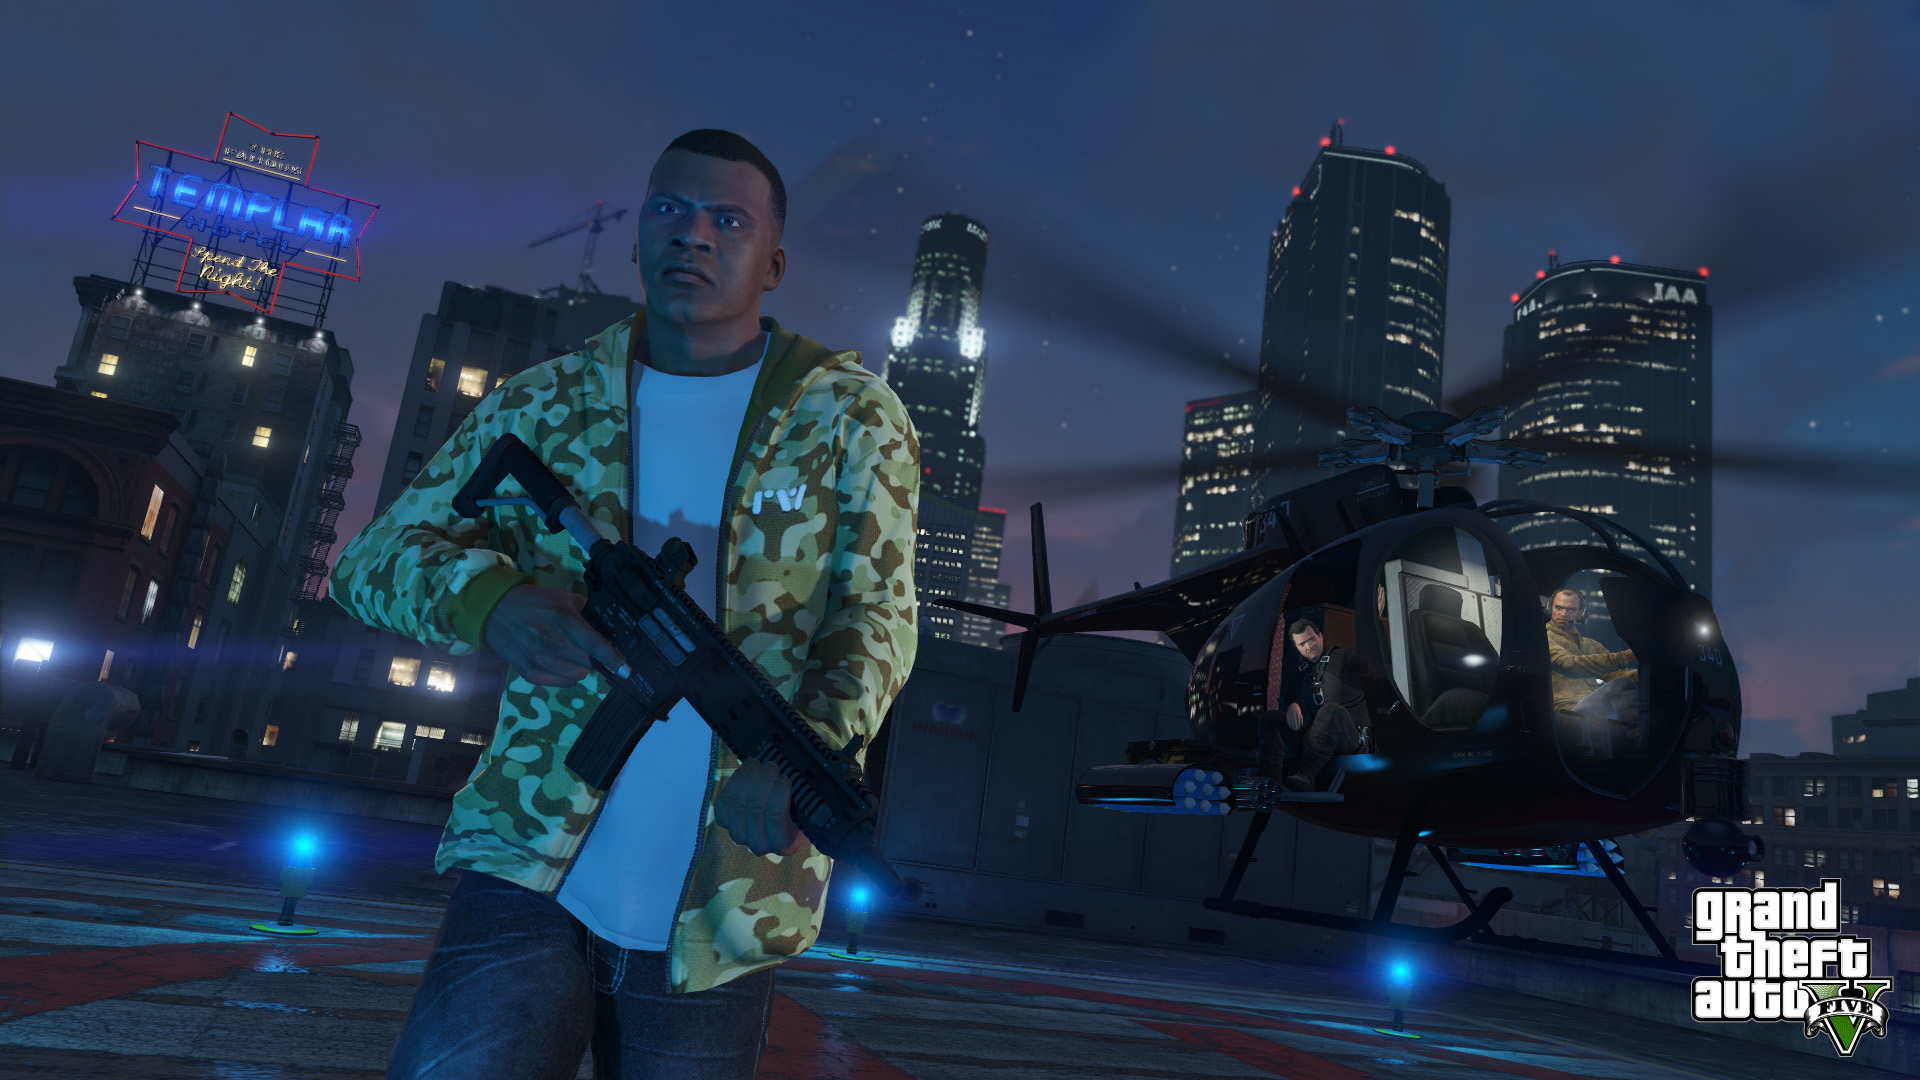 Grand Theft Auto 6 Hinted After GTA Online Got Hacked